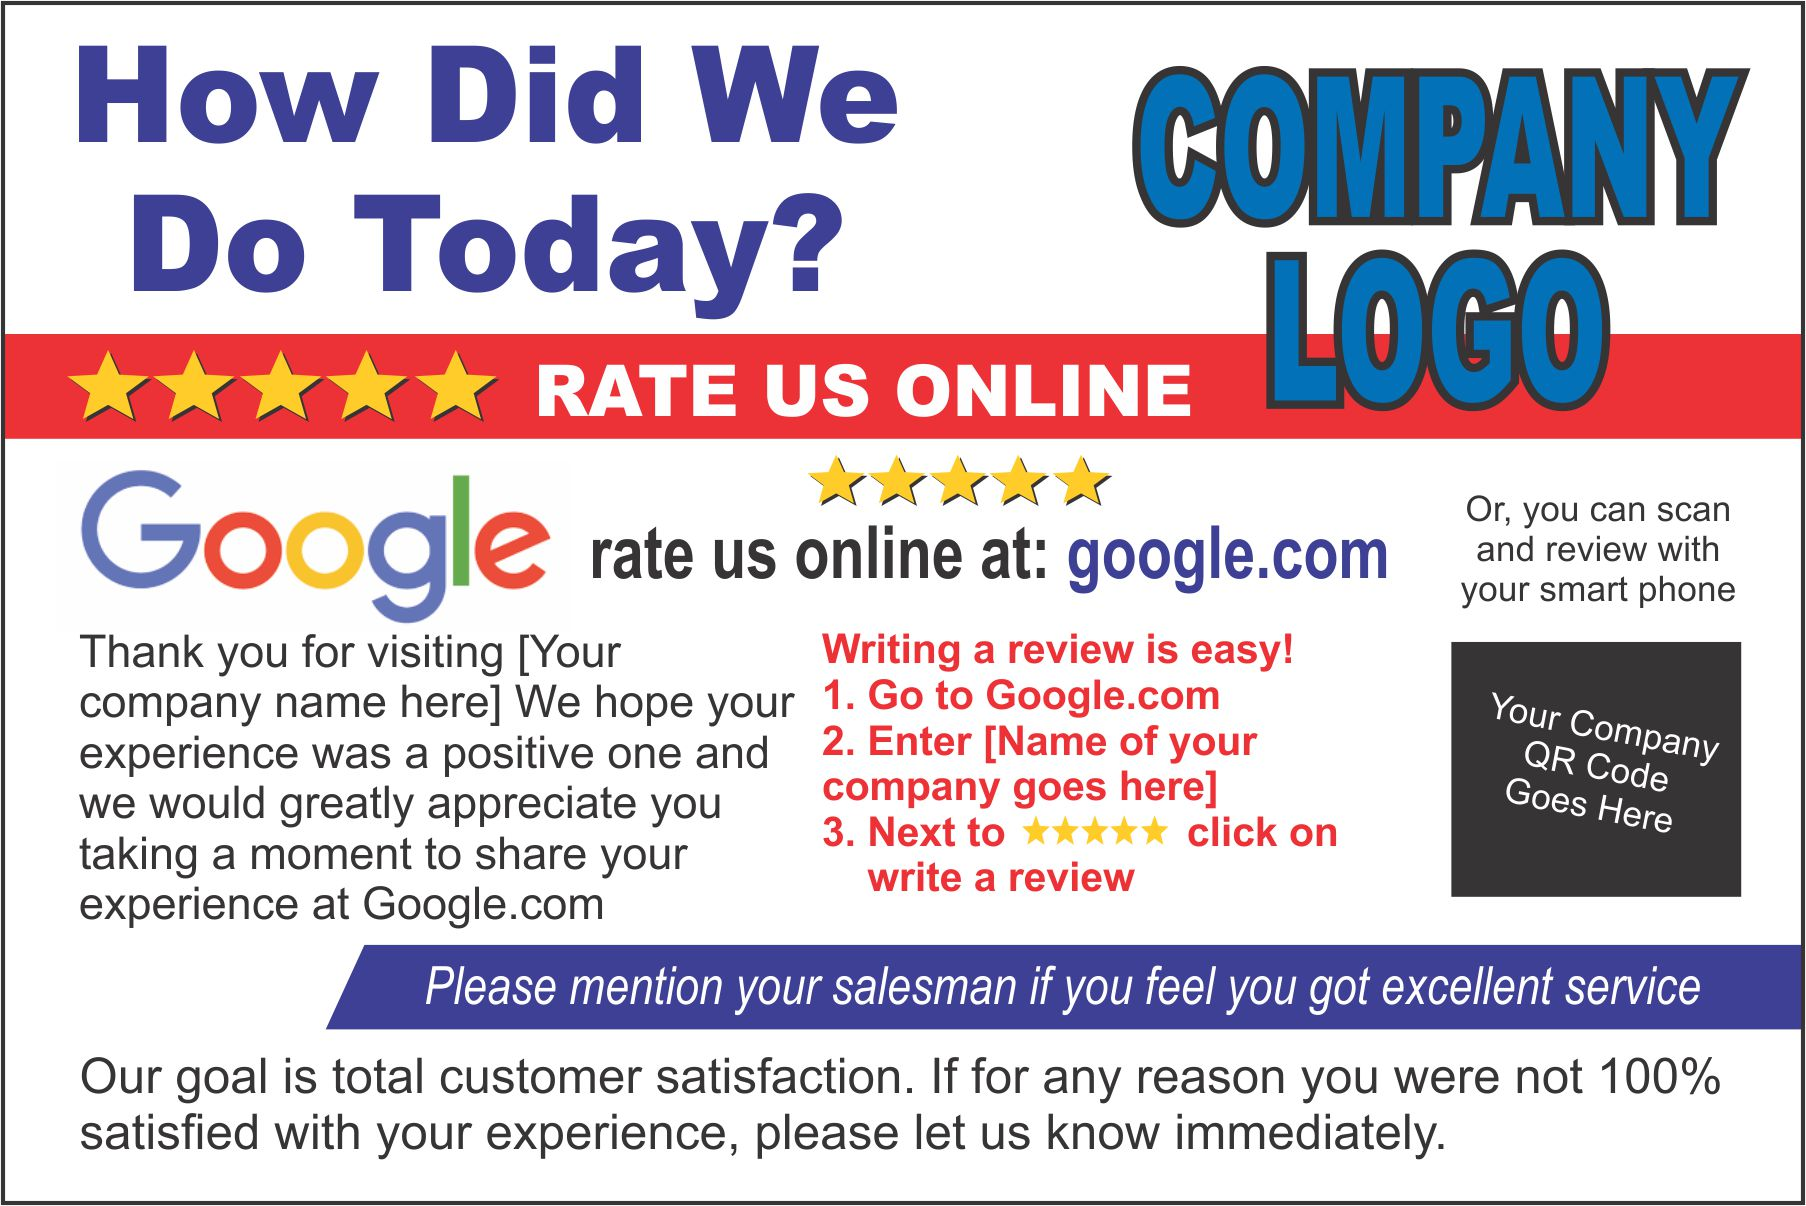 Rate Card - Google